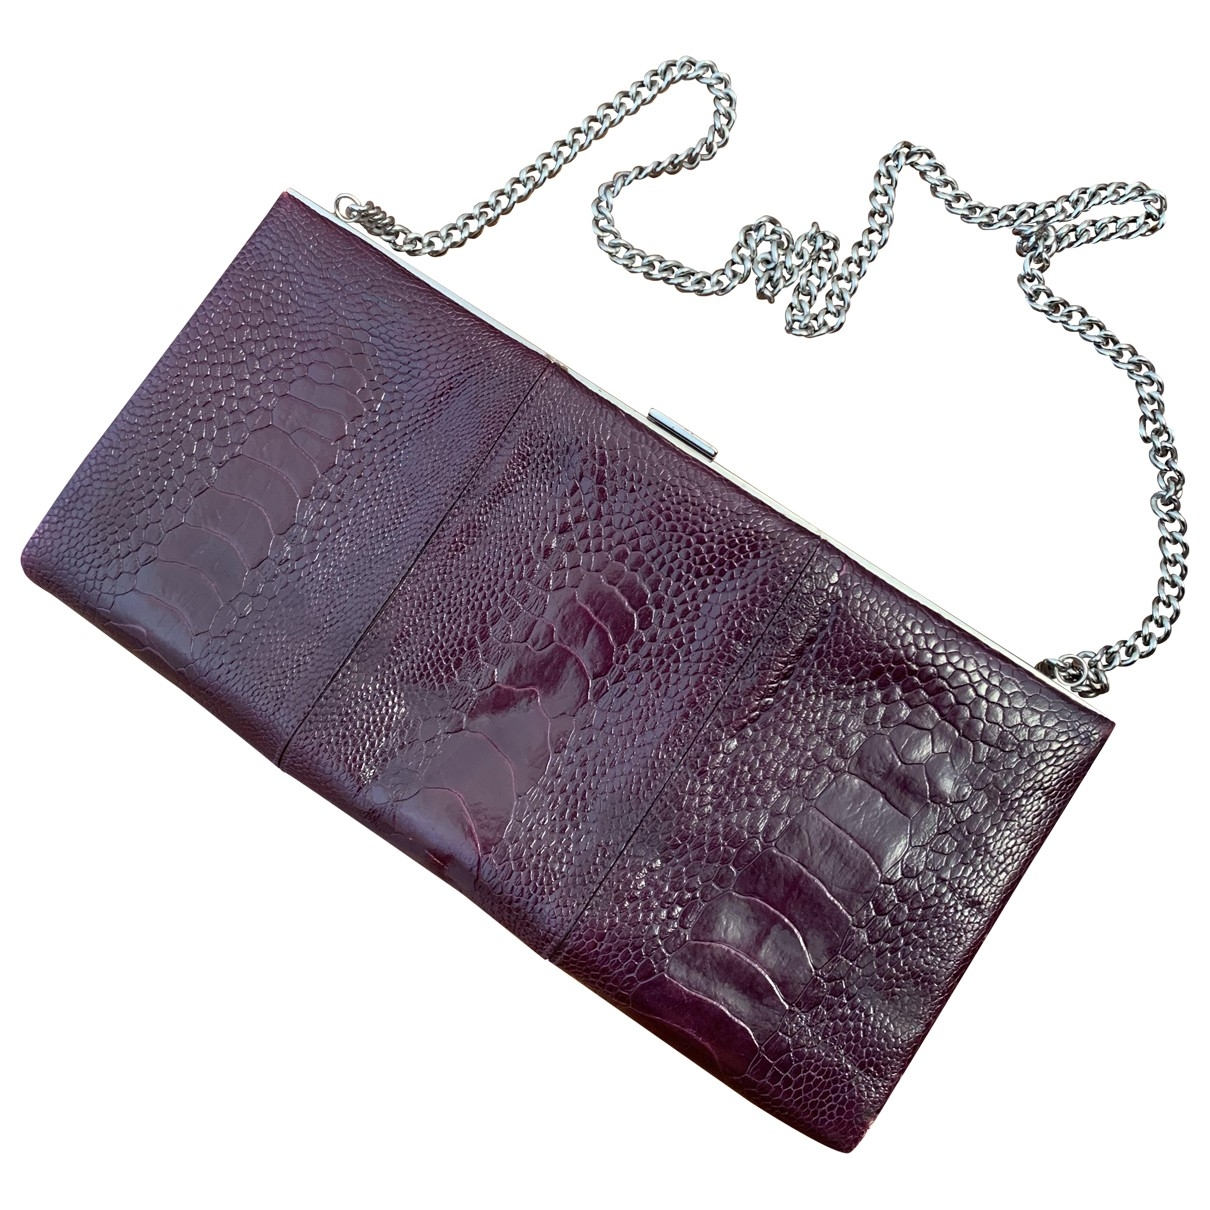 Christian Louboutin \N Burgundy Leather Clutch bag for Women \N